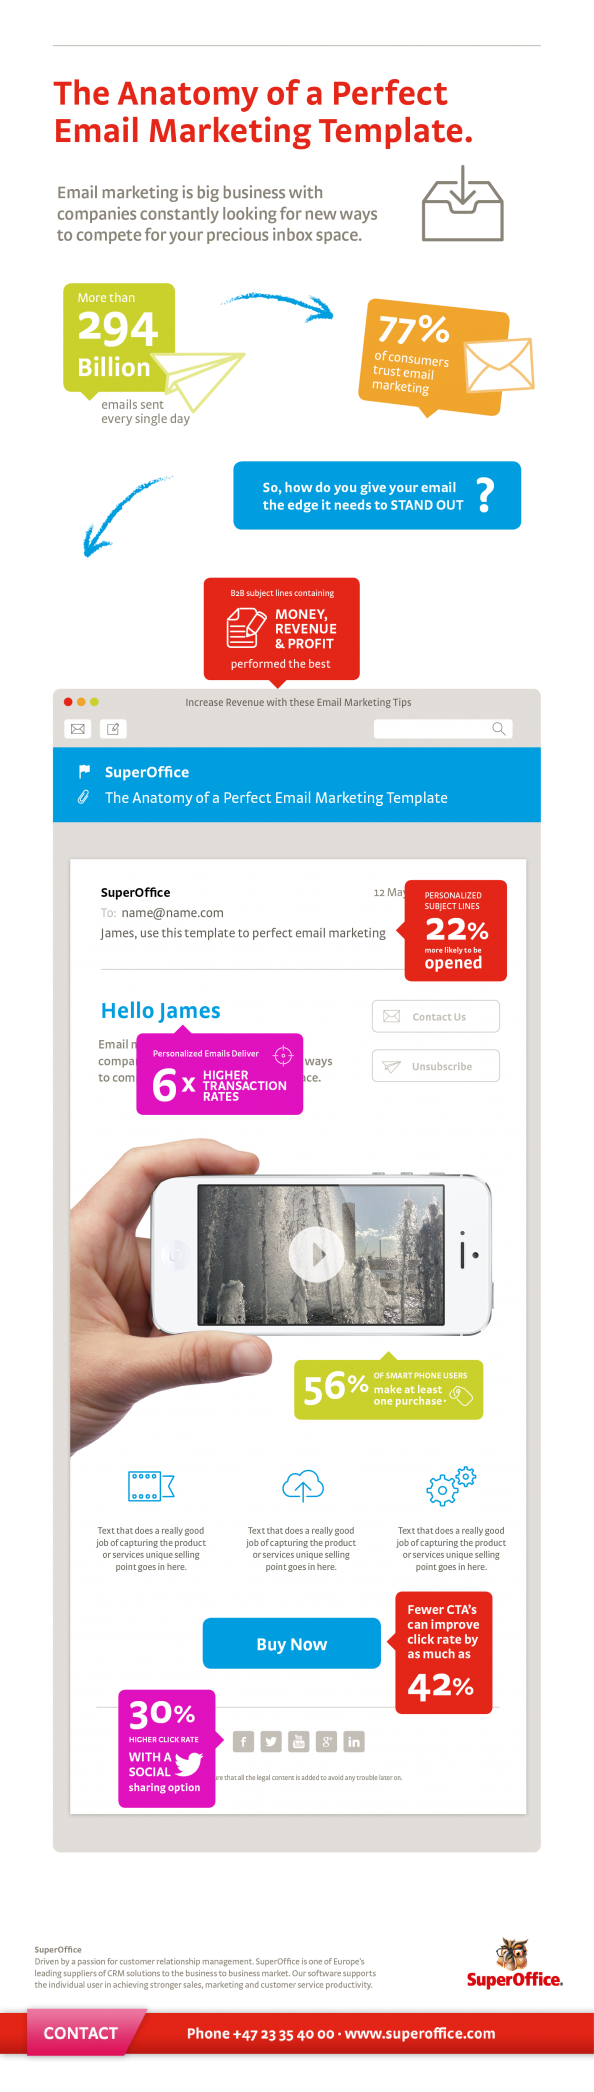 Email marketing template free download infographic